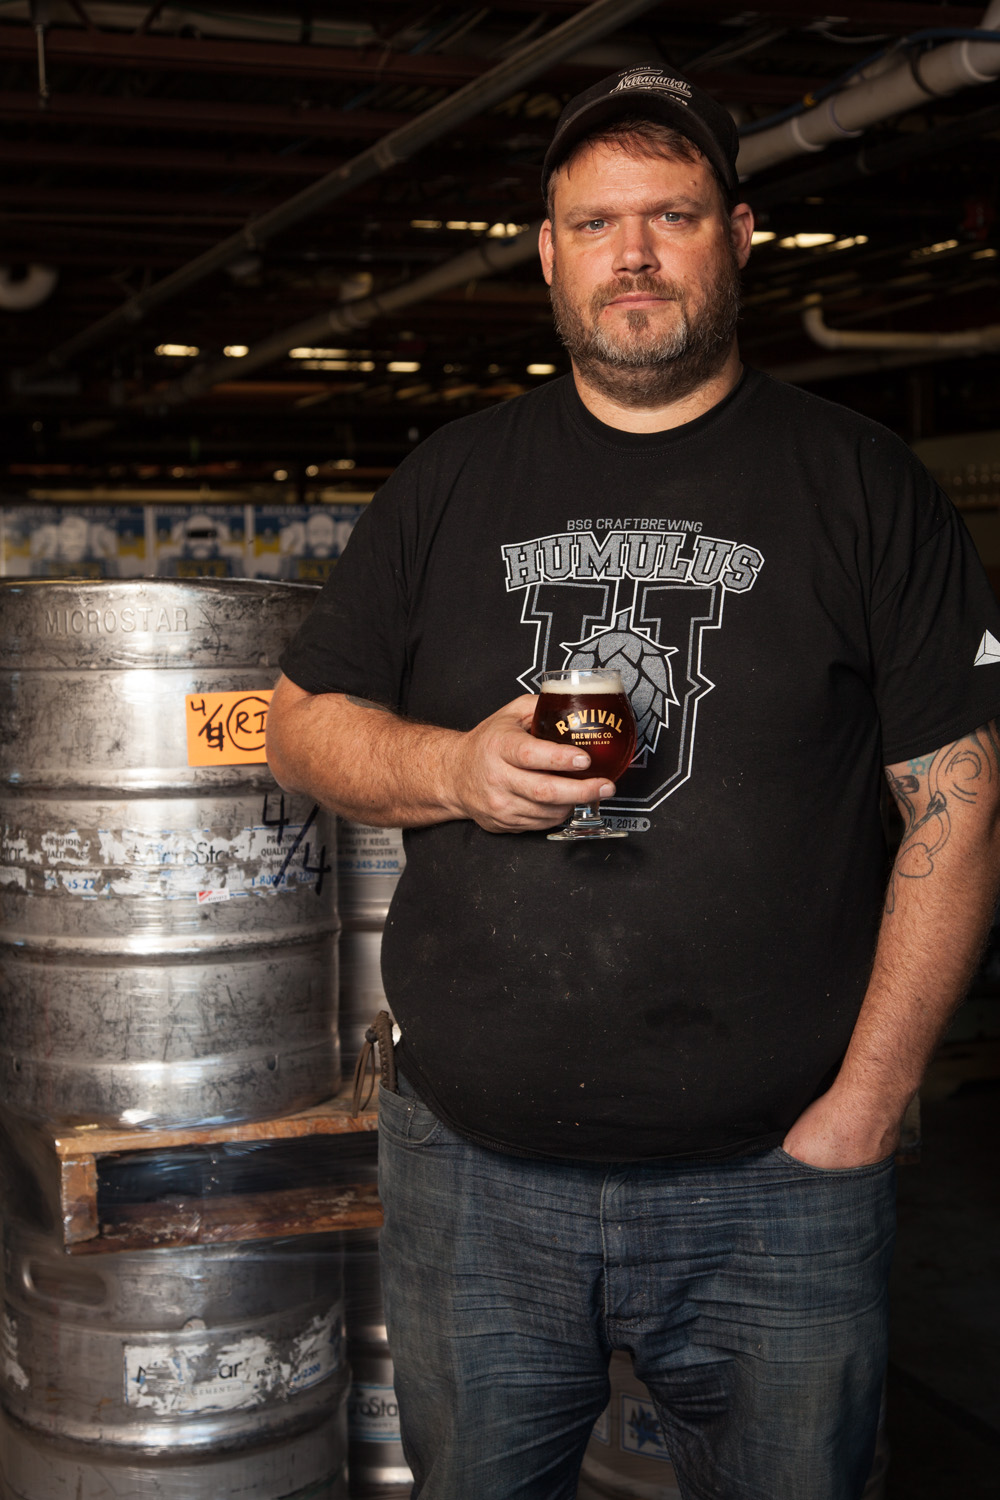 Sean Larkin, Brewmaster at Revival Brewing Co. Cranston, RI Established in 2012